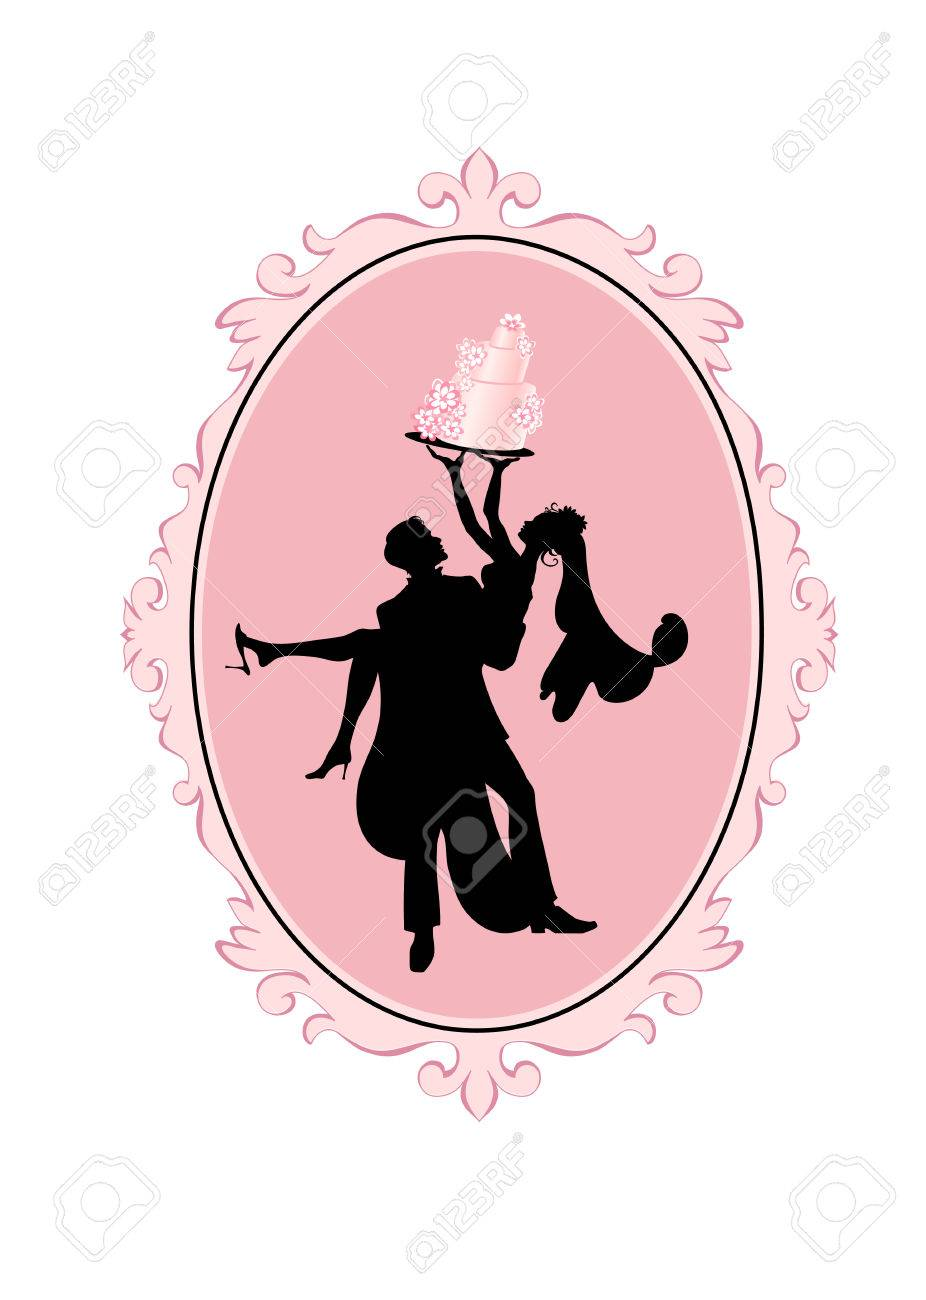 Vector Illustration Of Bride And Groom In Silhouette With Wedding ...